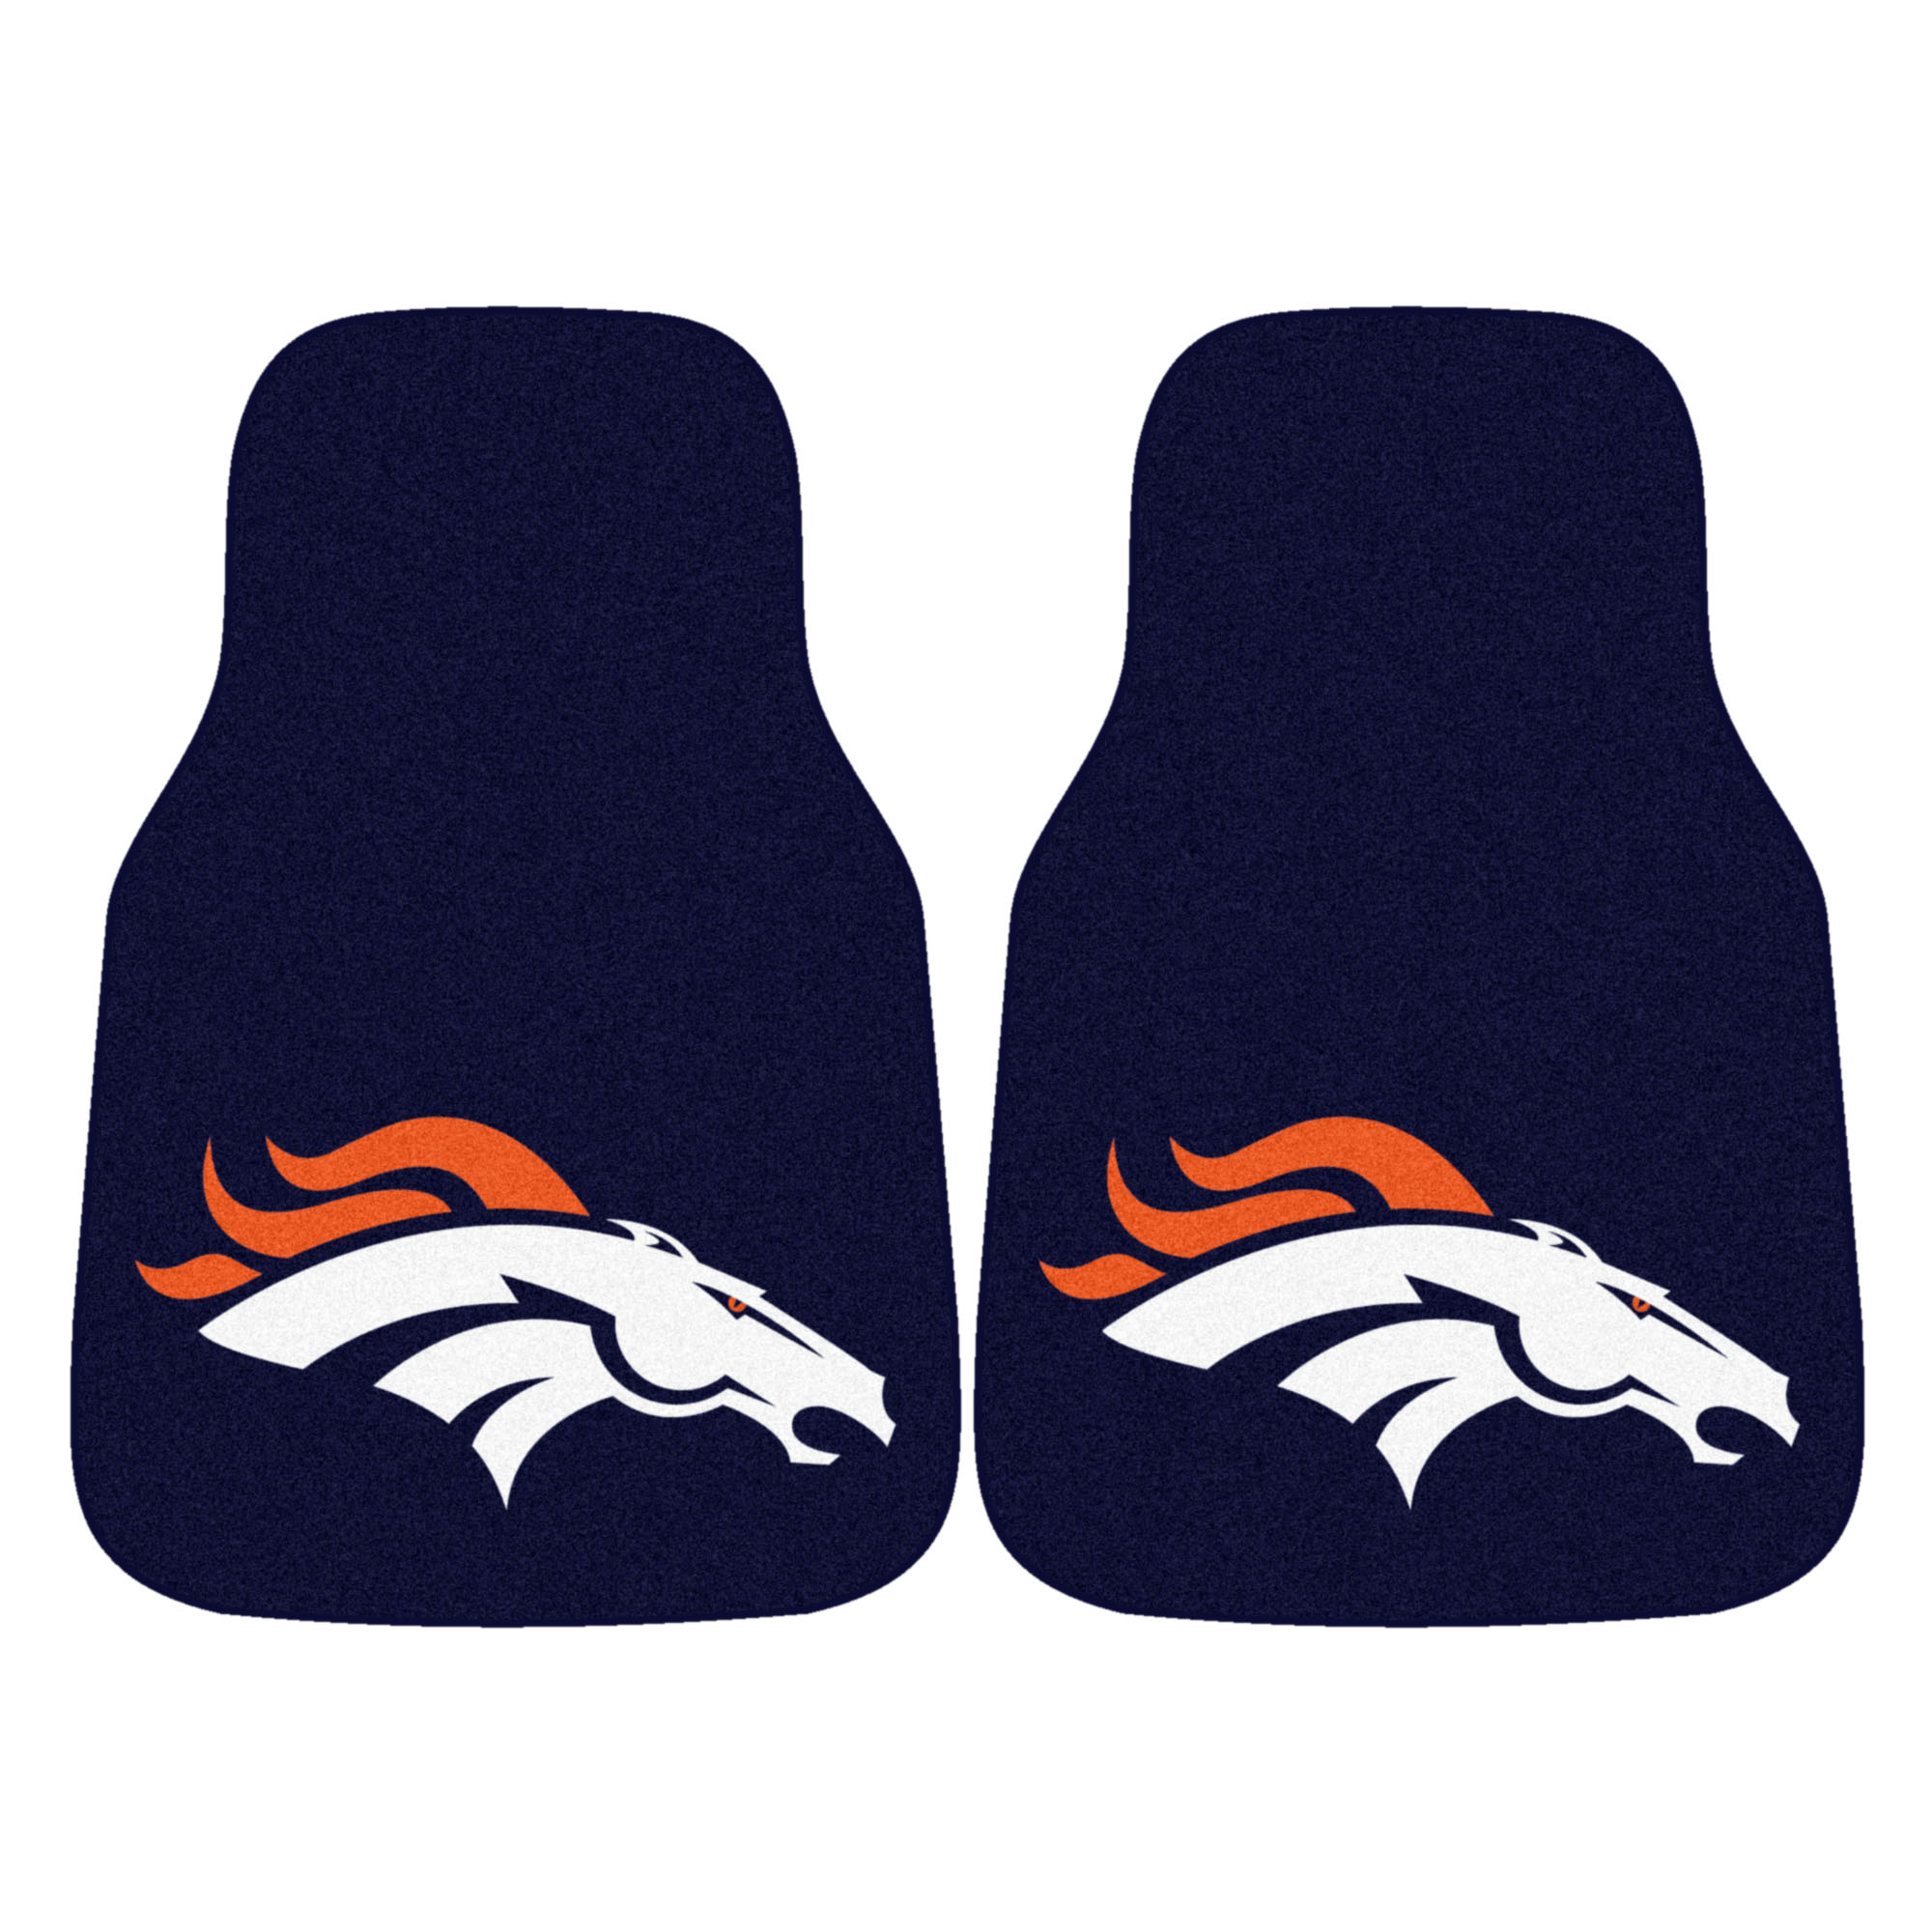 NFL Denver Broncos 2-PC Set of Front Carpet Car Mats, Universal Size